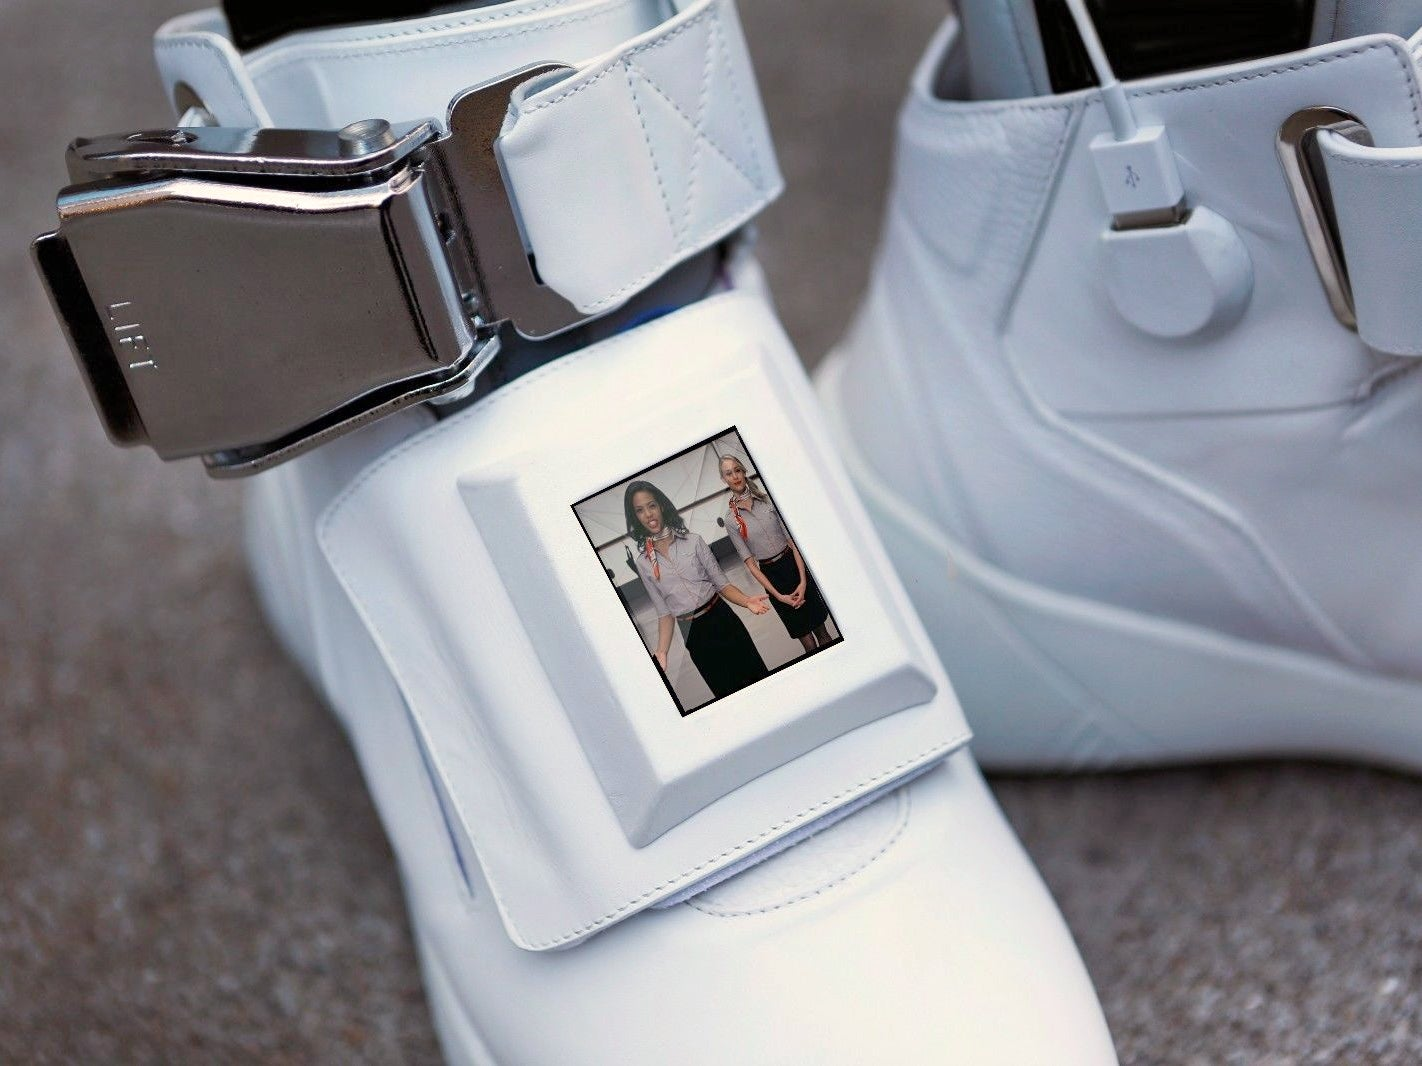 Virgin America Created Sneakers That Recreate the Experience of Flying First Class